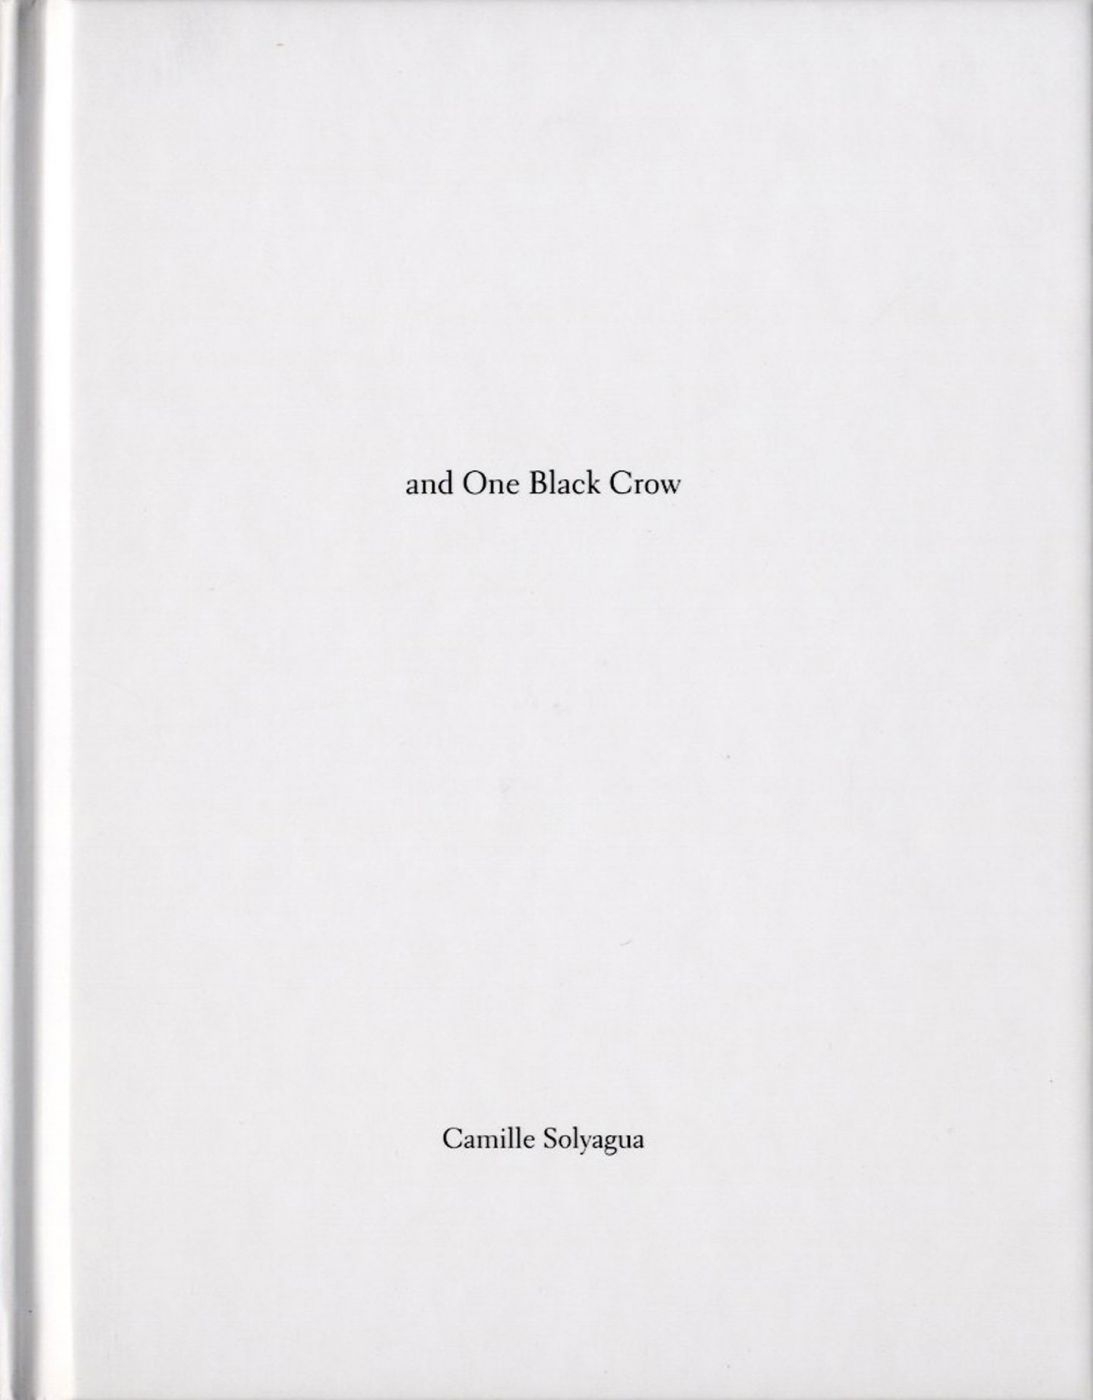 Camille Solyagua: Twenty-One Red-Crowned Cranes and One Black Crow (One Picture Book #27), Limited Edition (with Print)